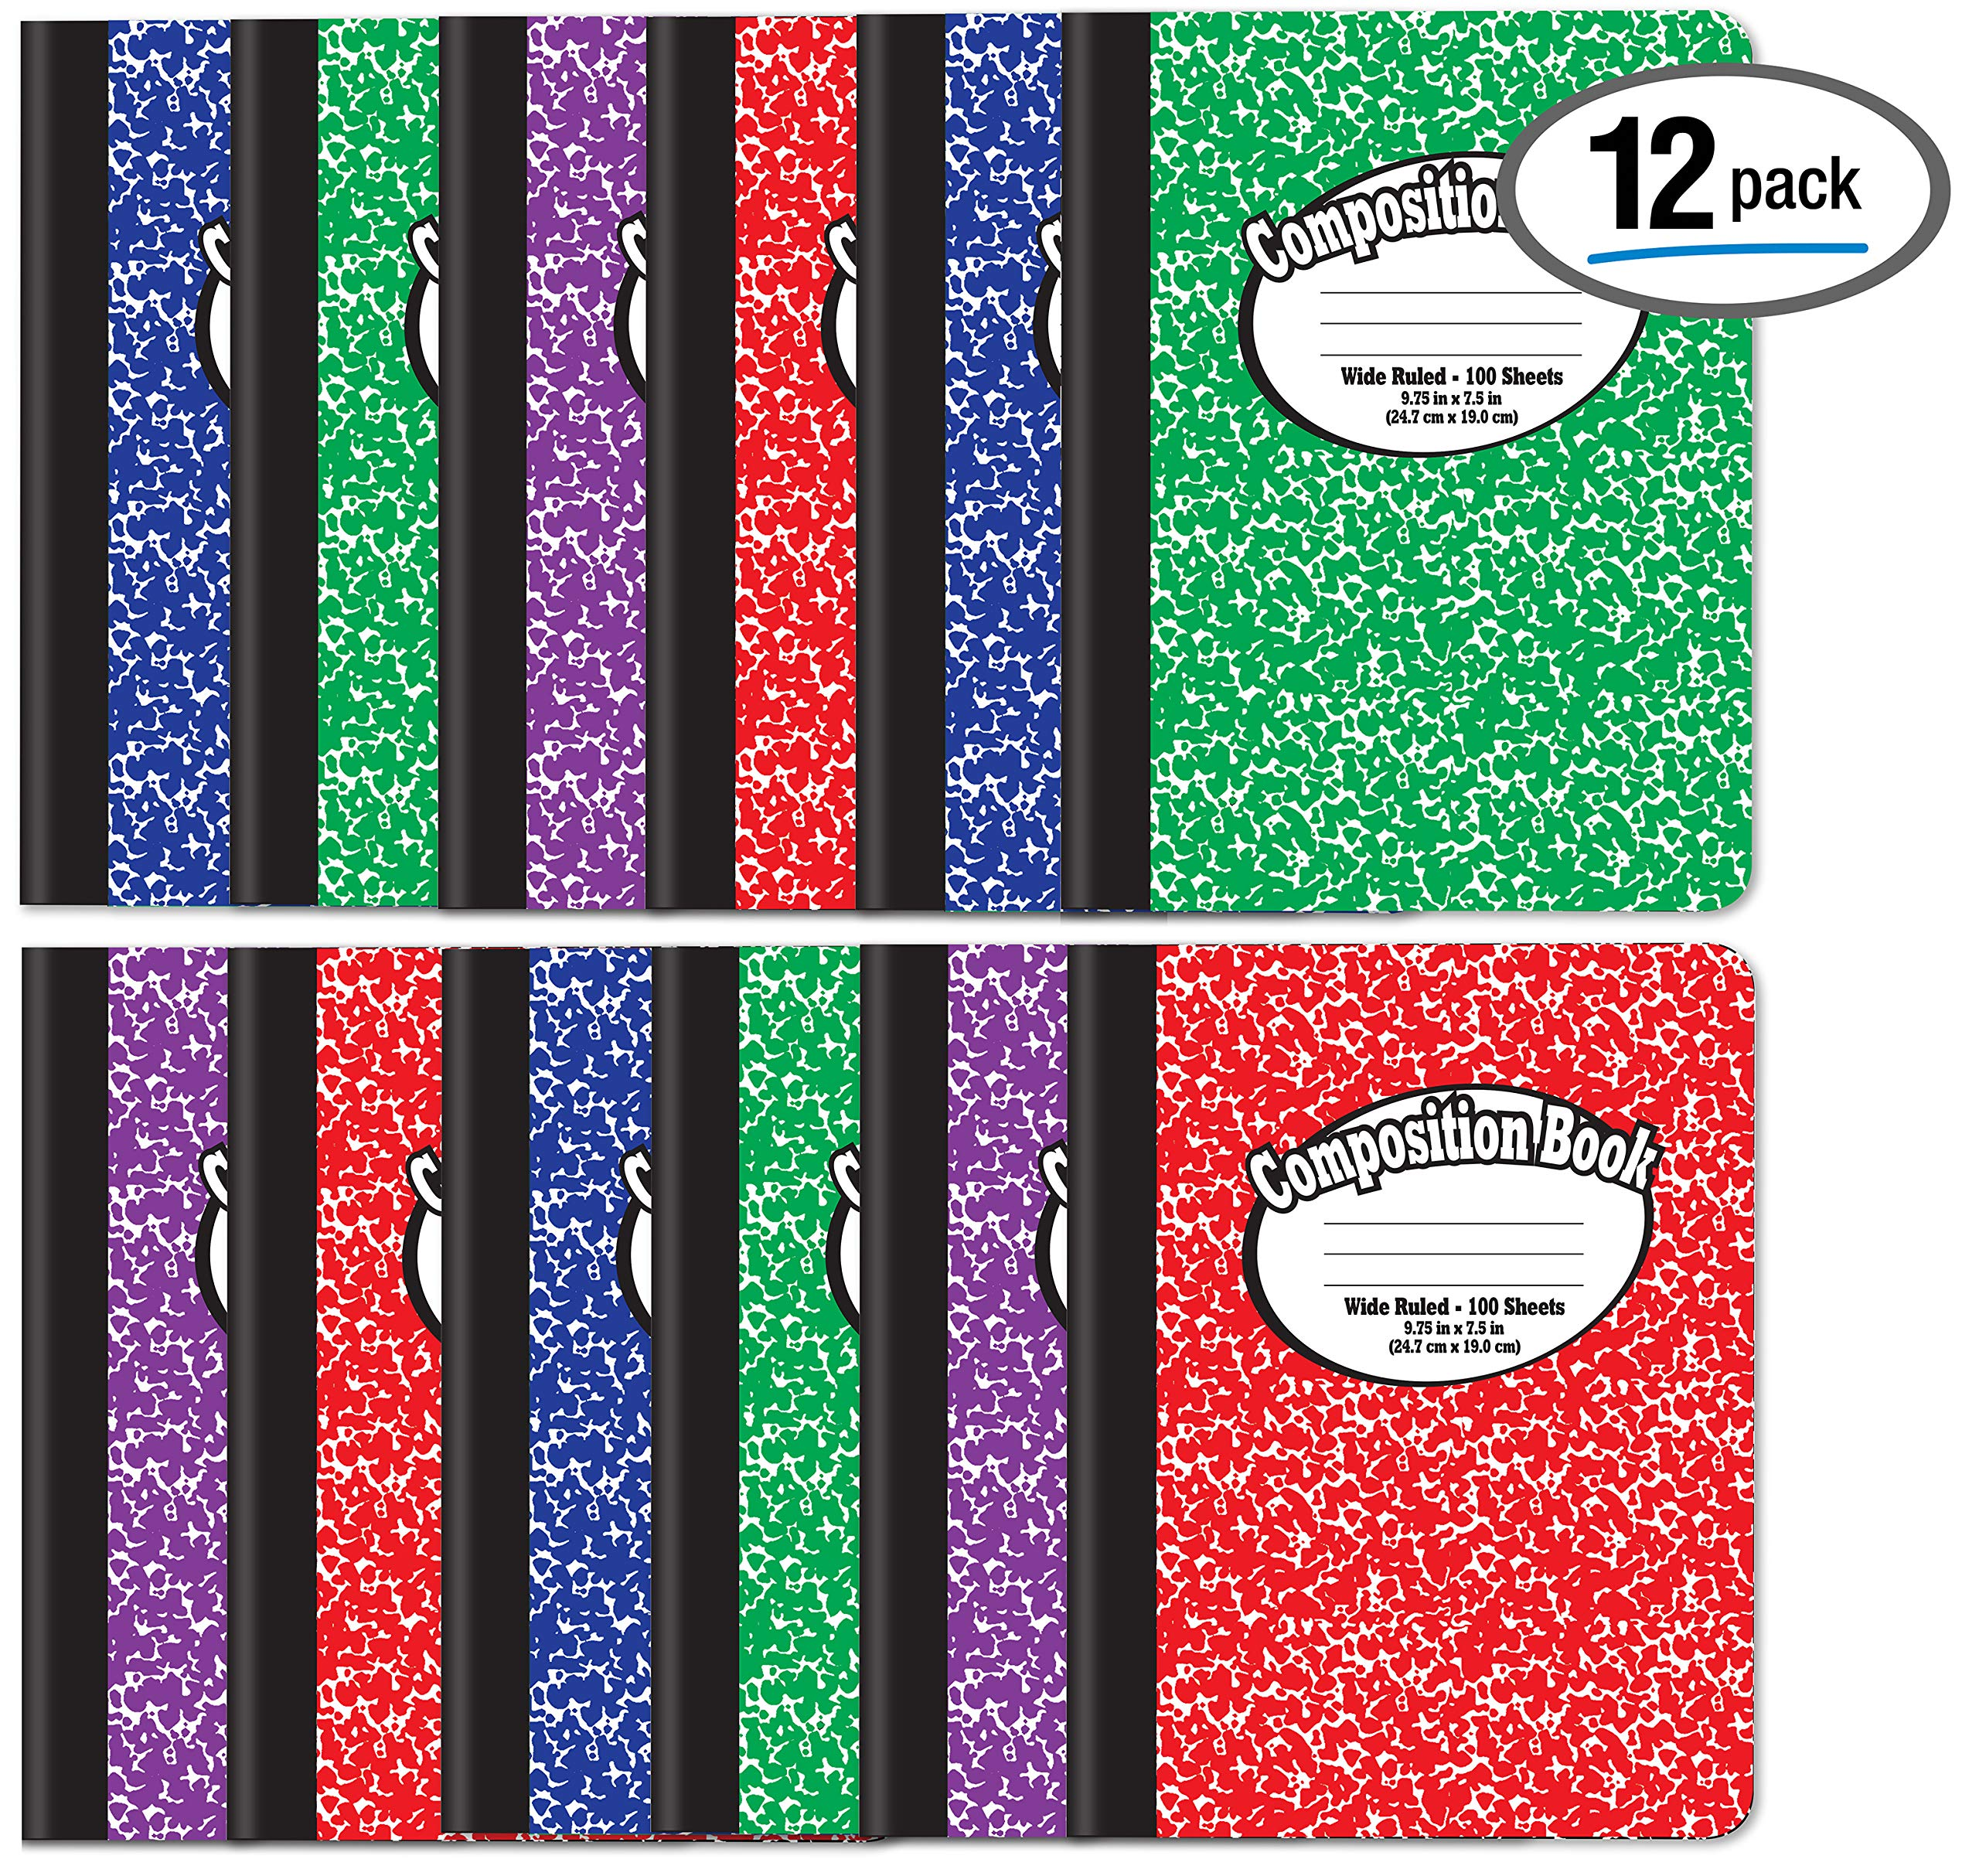 Composition Book Notebook - Hardcover, Wide Ruled (11/32-inch), 100 Sheet, One Subject, 9.75'' x 7.5'', Assorted Covers: Red, Blue, Green, Purple-12 Pack by Better Office Products